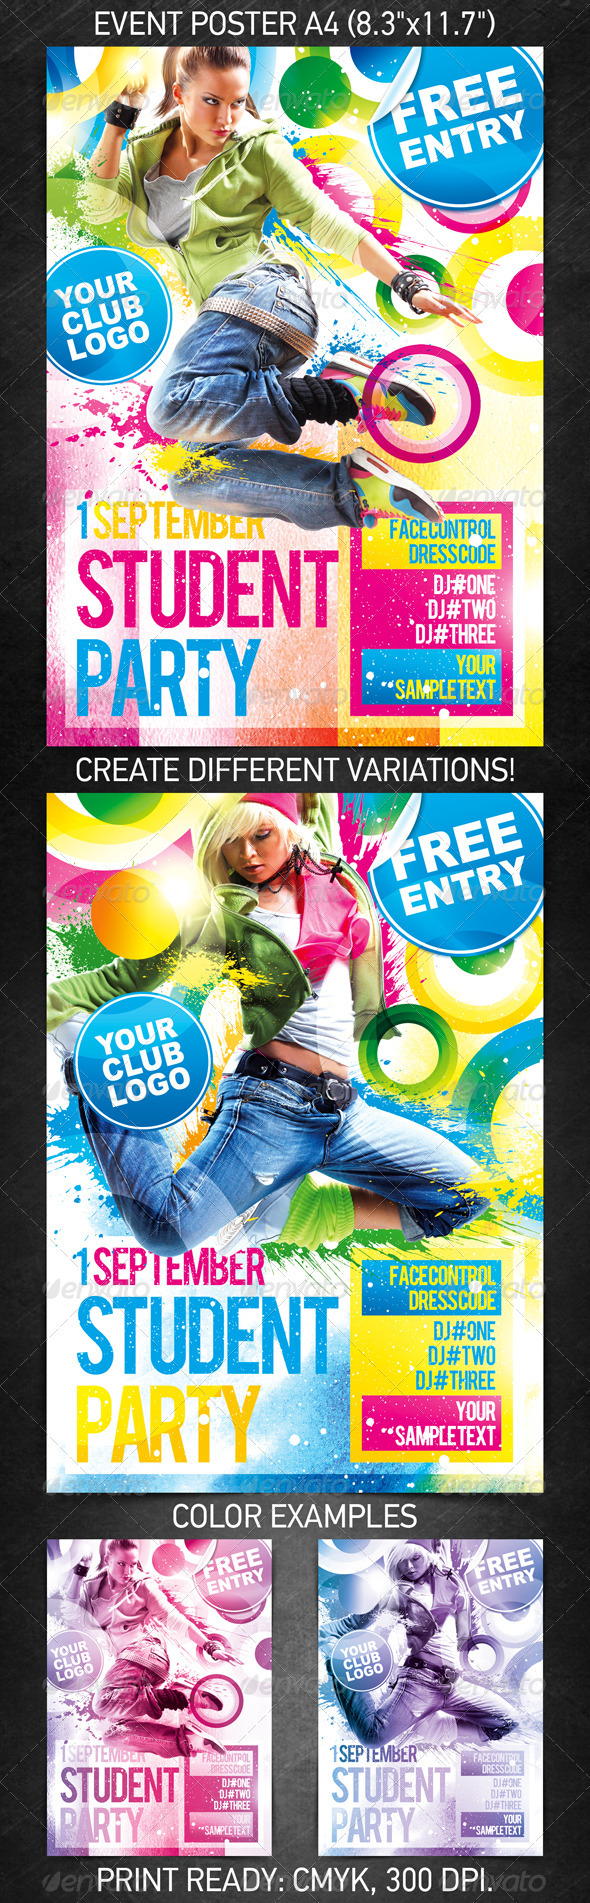 Student Party Poster - Clubs &amp; Parties Events